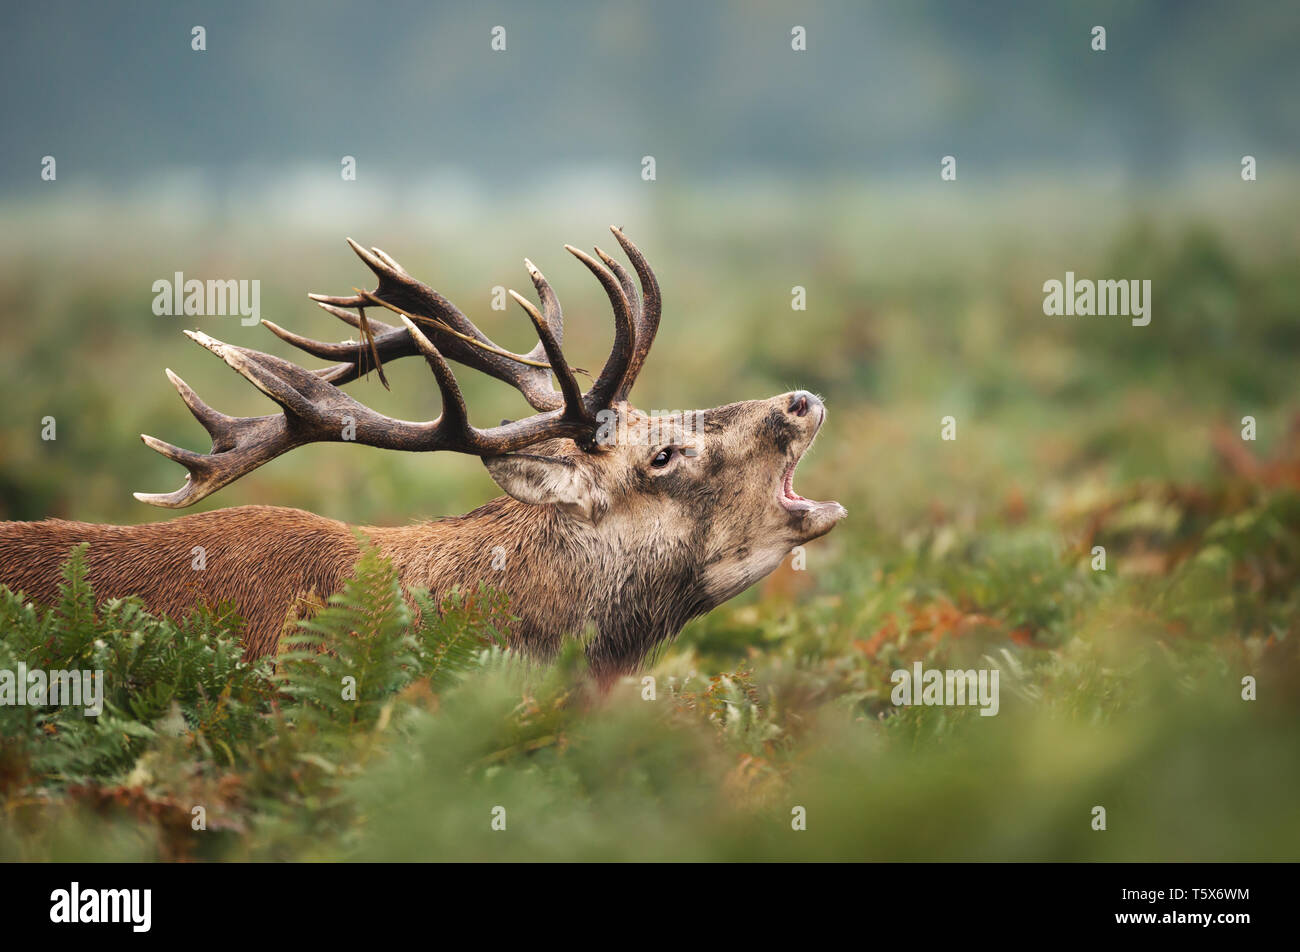 Close-up of red deer stag calling during rutting season in autumn, UK. - Stock Image